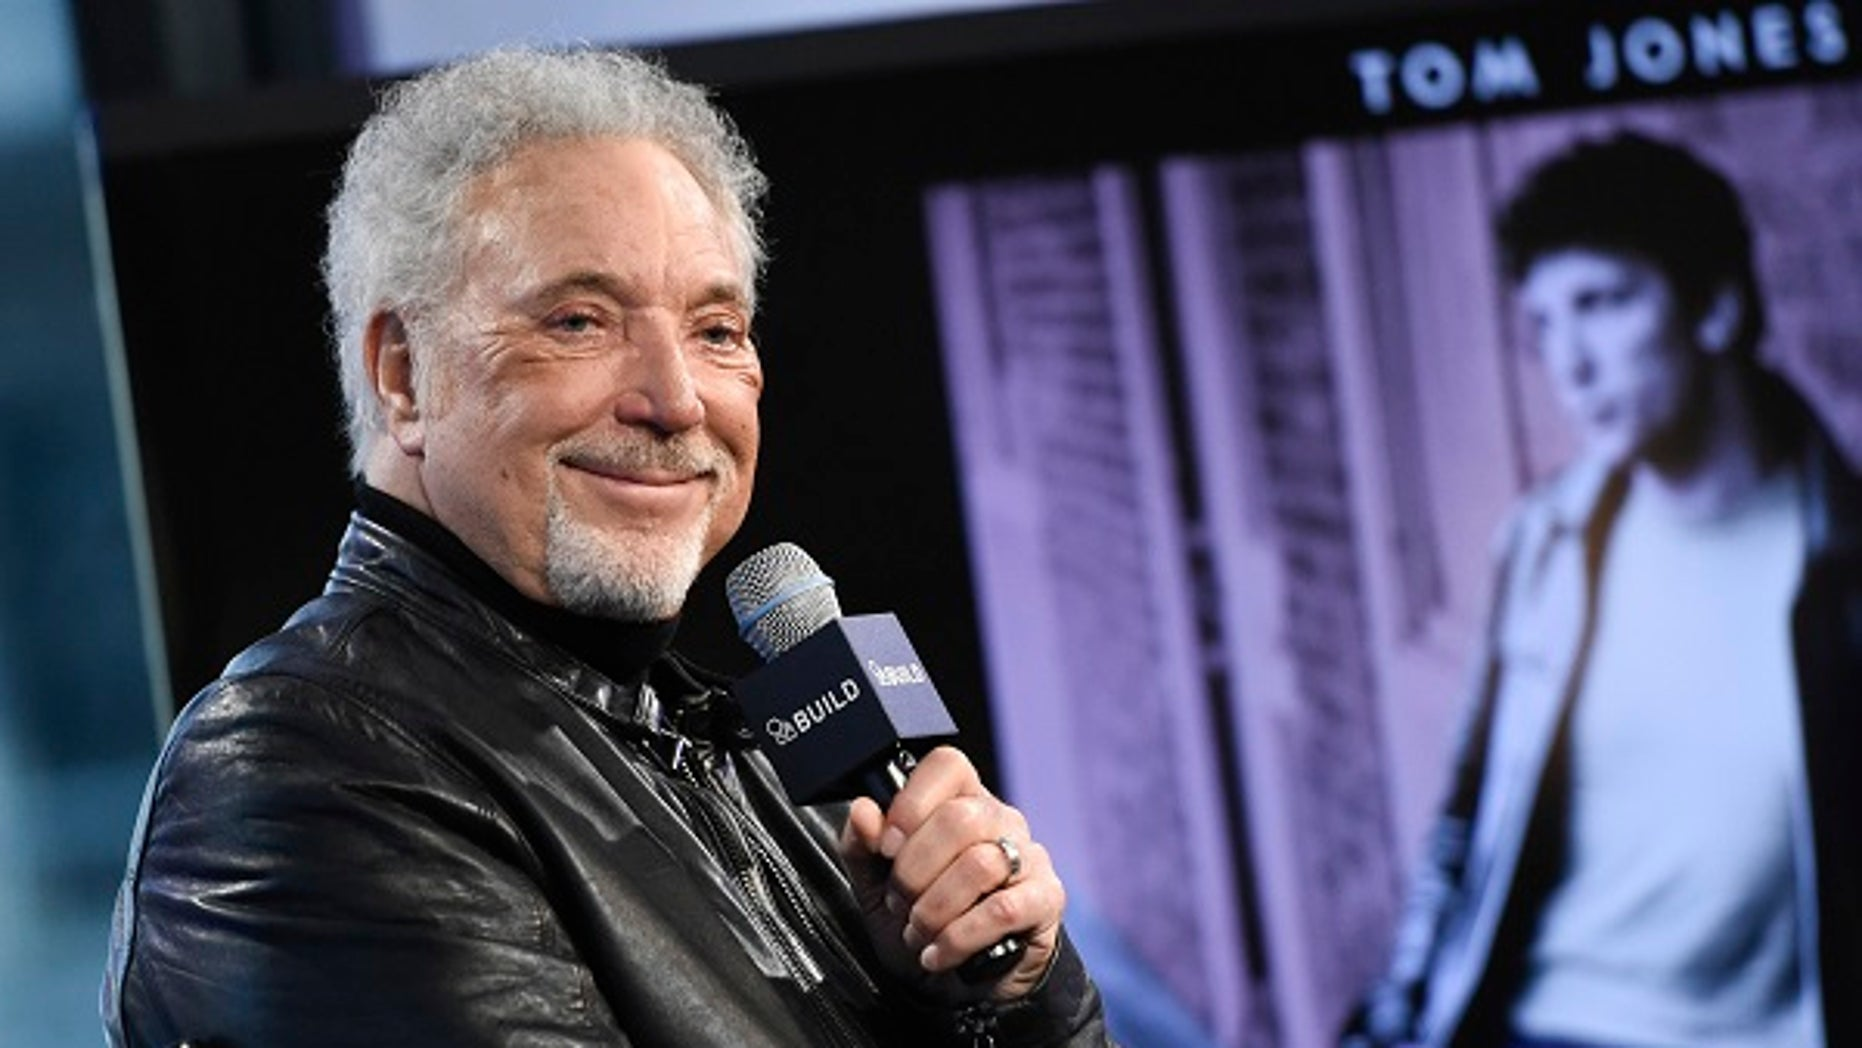 Sir Tom Jones announced that he has postponed his planned U.S. tour due to health issues.